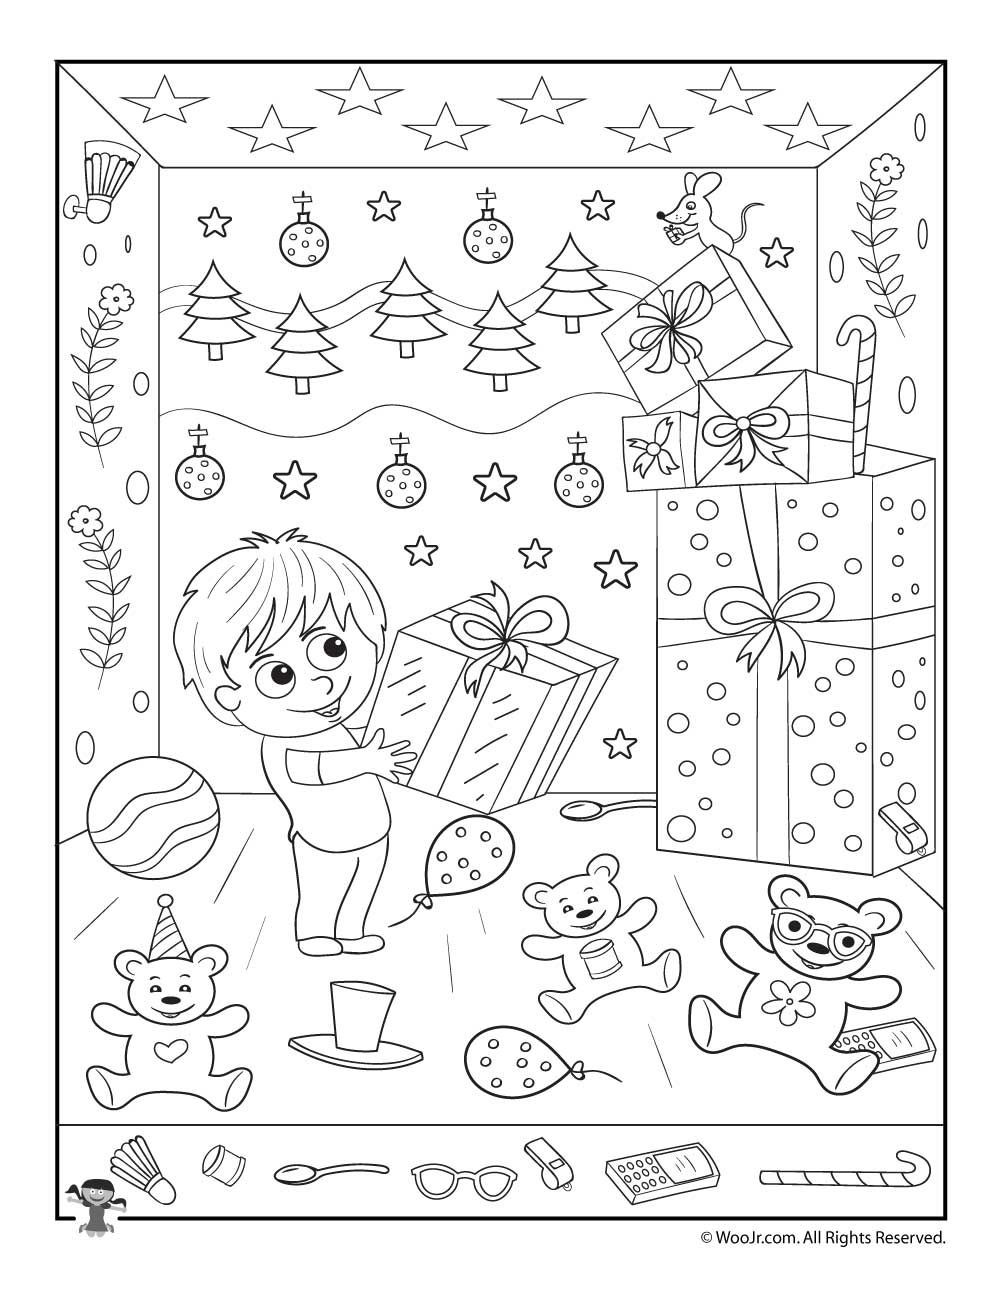 Christmas Hidden Pictures Printable Christmas Gifts Hidden Picture Printable Activity